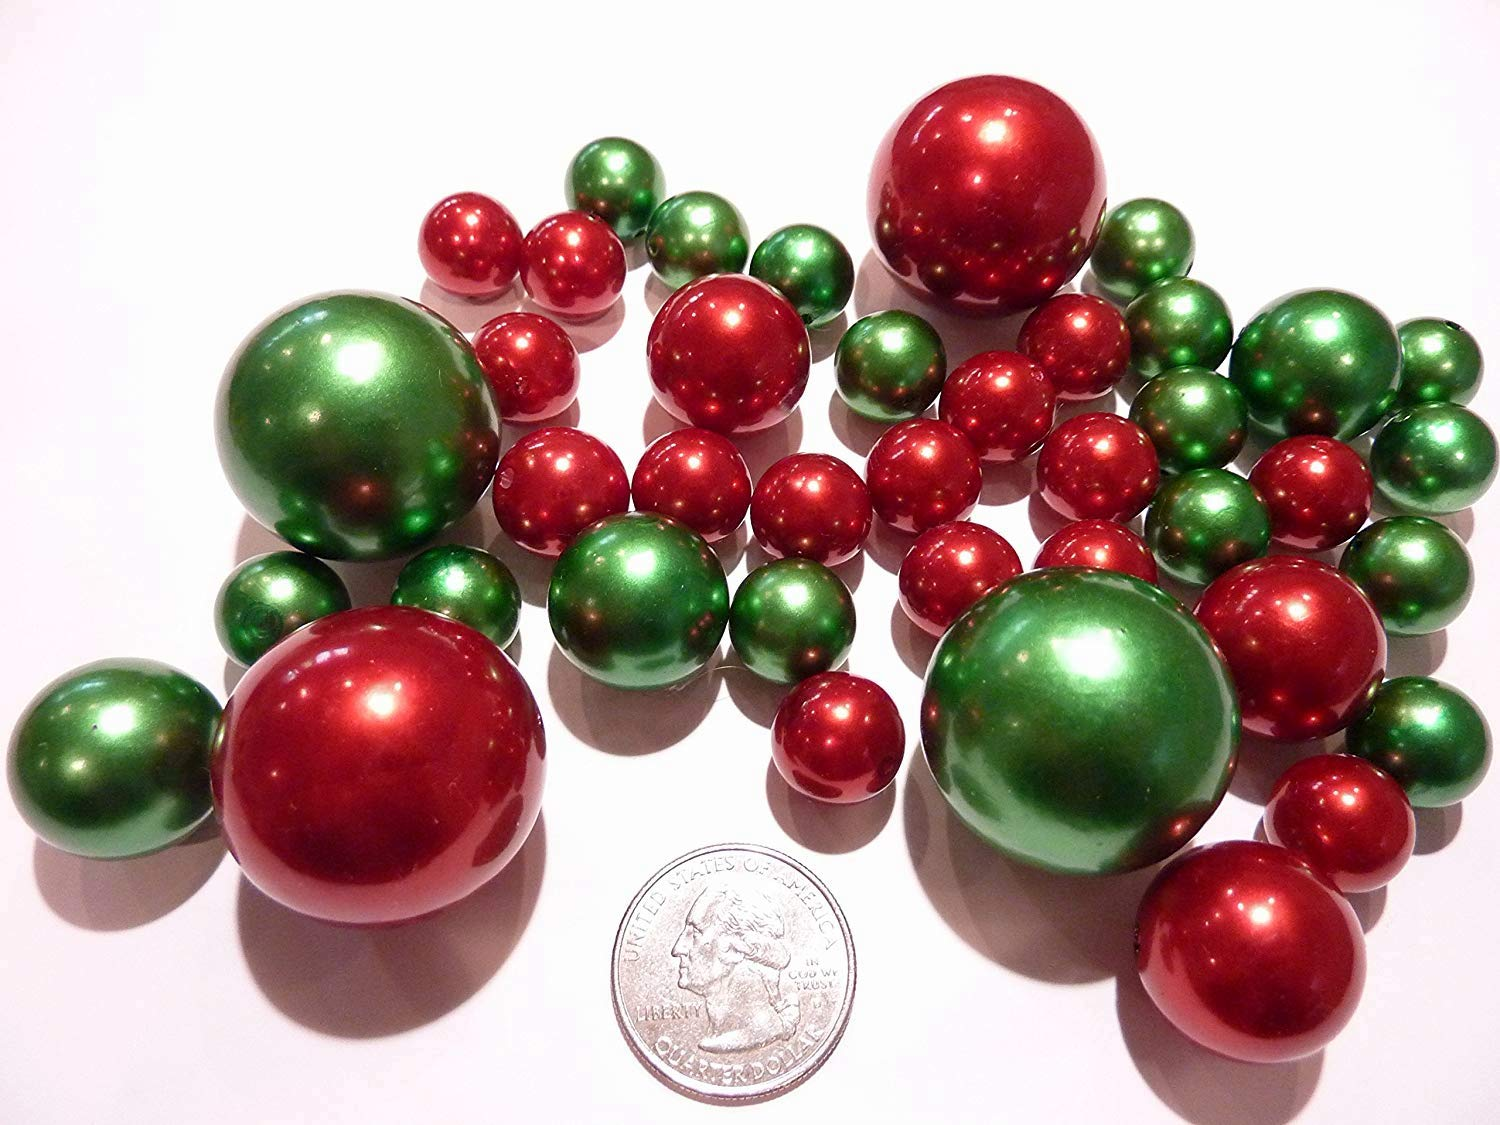 FLOATING Christmas Holiday Green & White Pearls with Red, Green and Sparkling Gems - Jumbo/Assorted Sizes Vase Fillers for Centerpiece Decorations + Includes Transparent Water Gels Vase Pearlfection RW40RGC